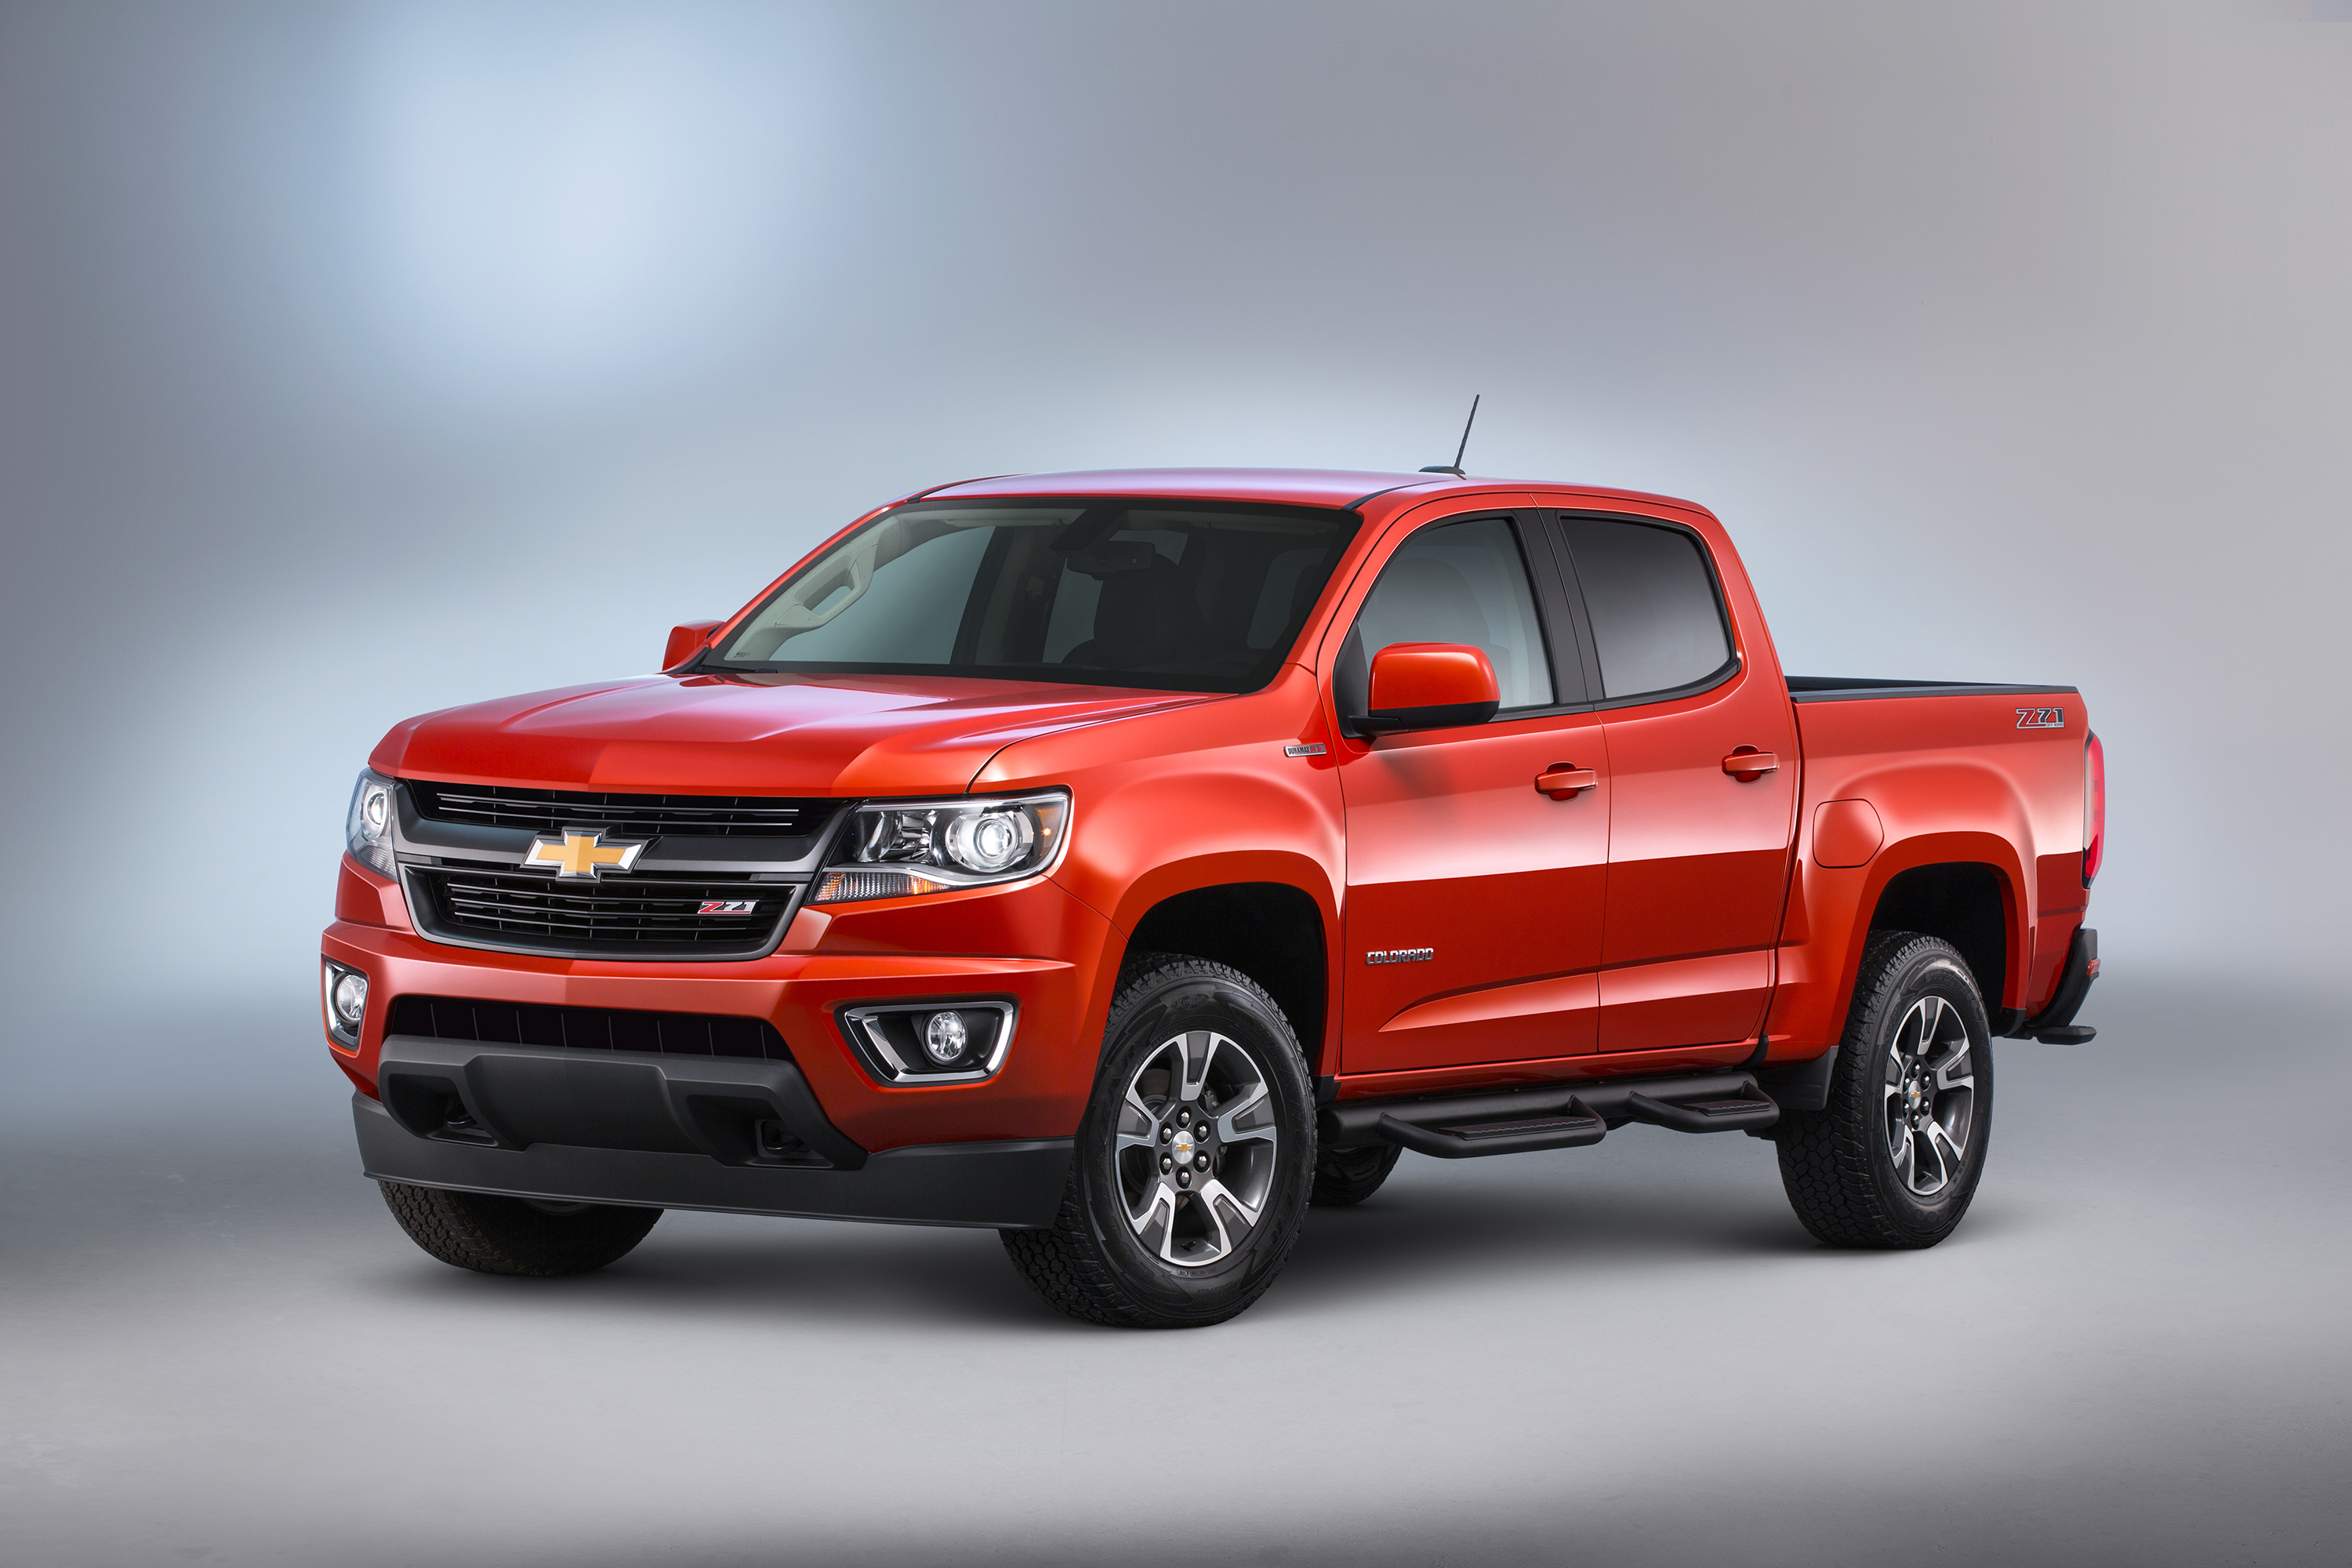 2016 Chevrolet Colorado Duramax TurboDiesel 048 chevrolet introduces colorado duramax diesel 1988 Chevy Truck Wiring Diagrams at metegol.co